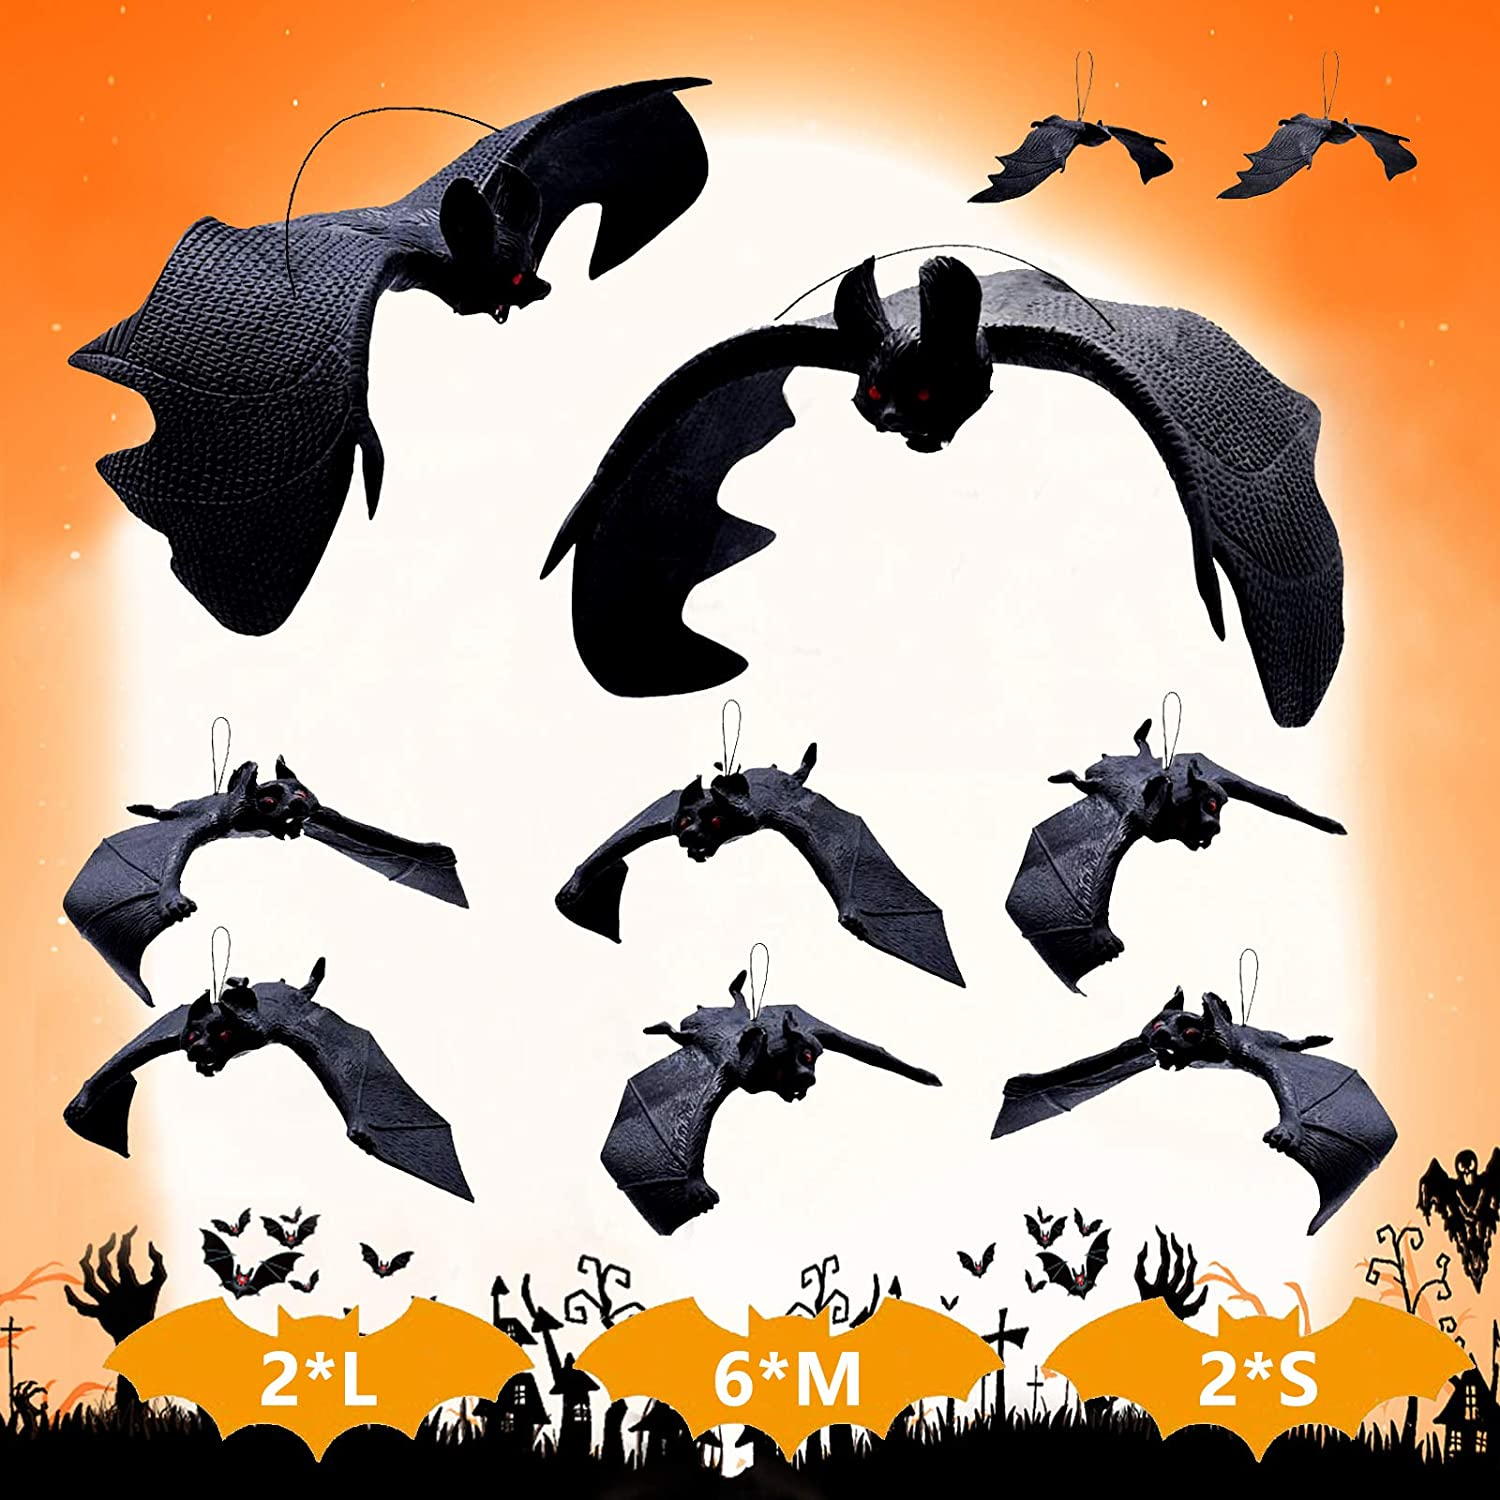 Supersfel Hanging Rubber Bats Decorations - 10pcs Large Fake Vampire Bat Decor Spooky Scary Bats Decoration for Kids Toy Gift Party Favor Decor Flying Bats Black